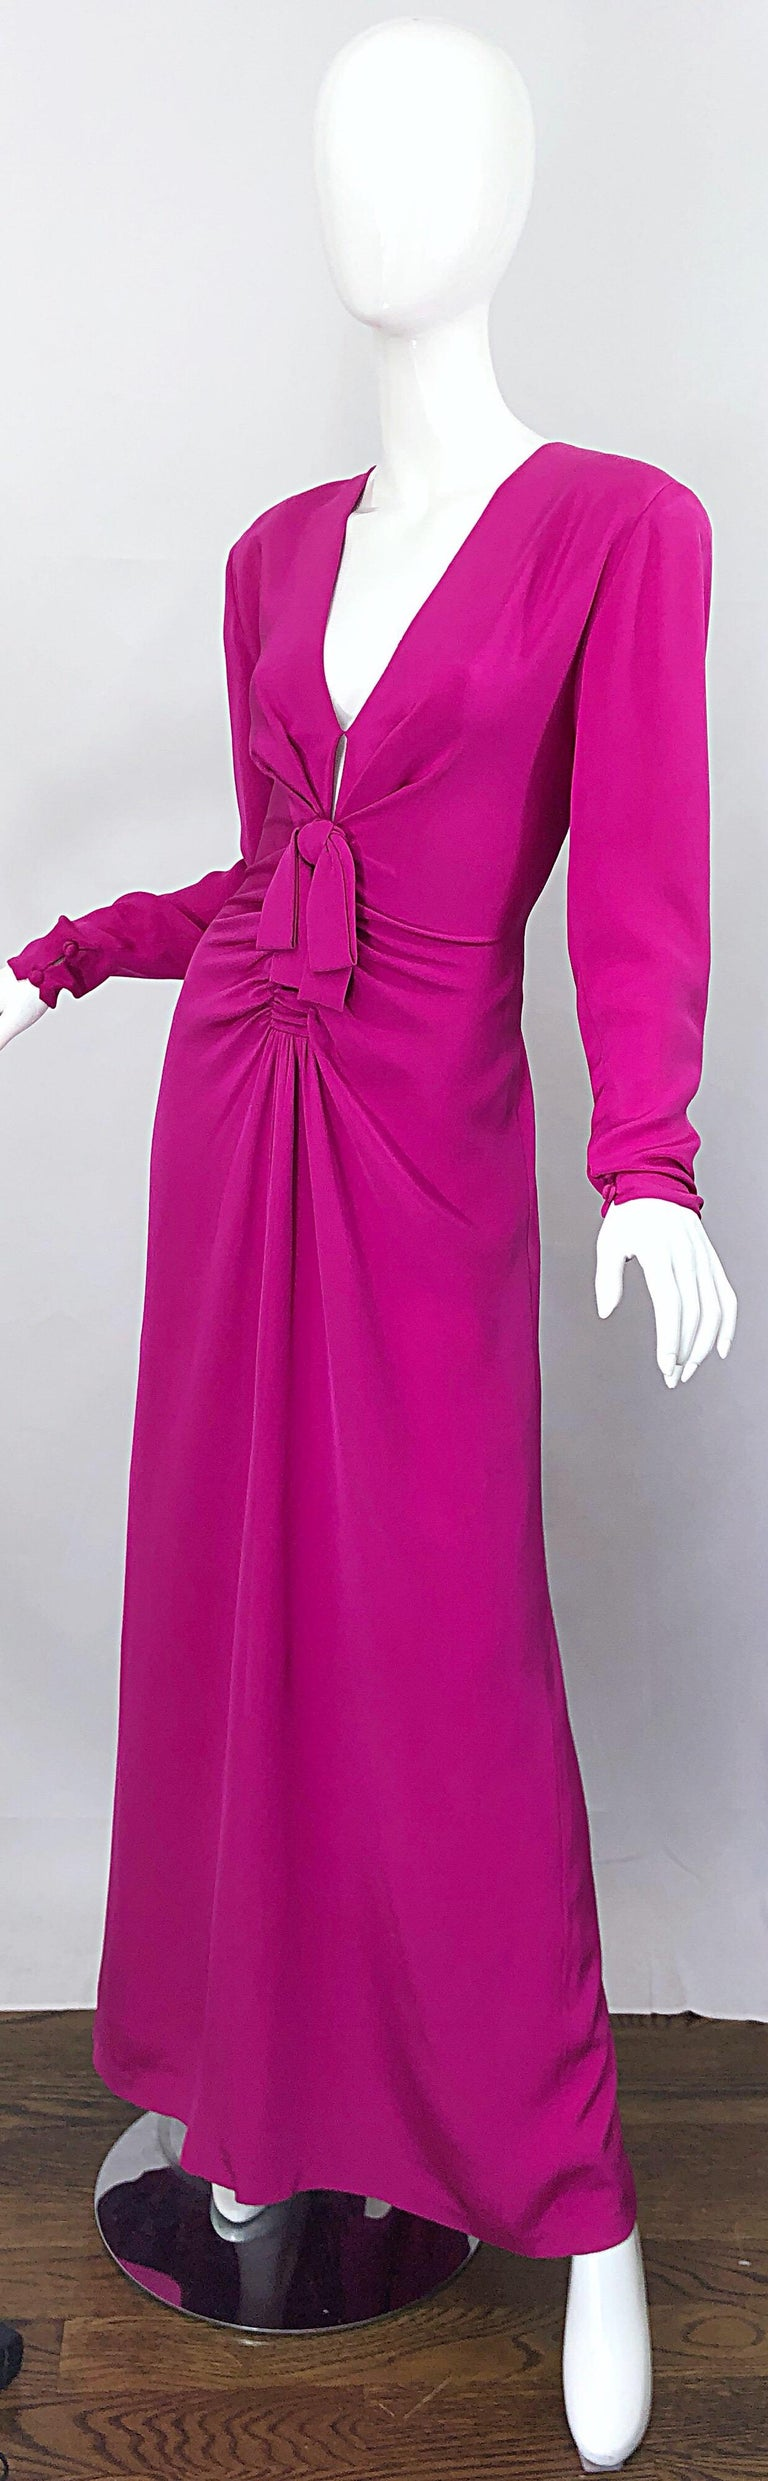 Vintage Bill Blass Size 10 Hot Pink Silk Jersey Cut - Out 1980s 80s Evening Gown For Sale 7